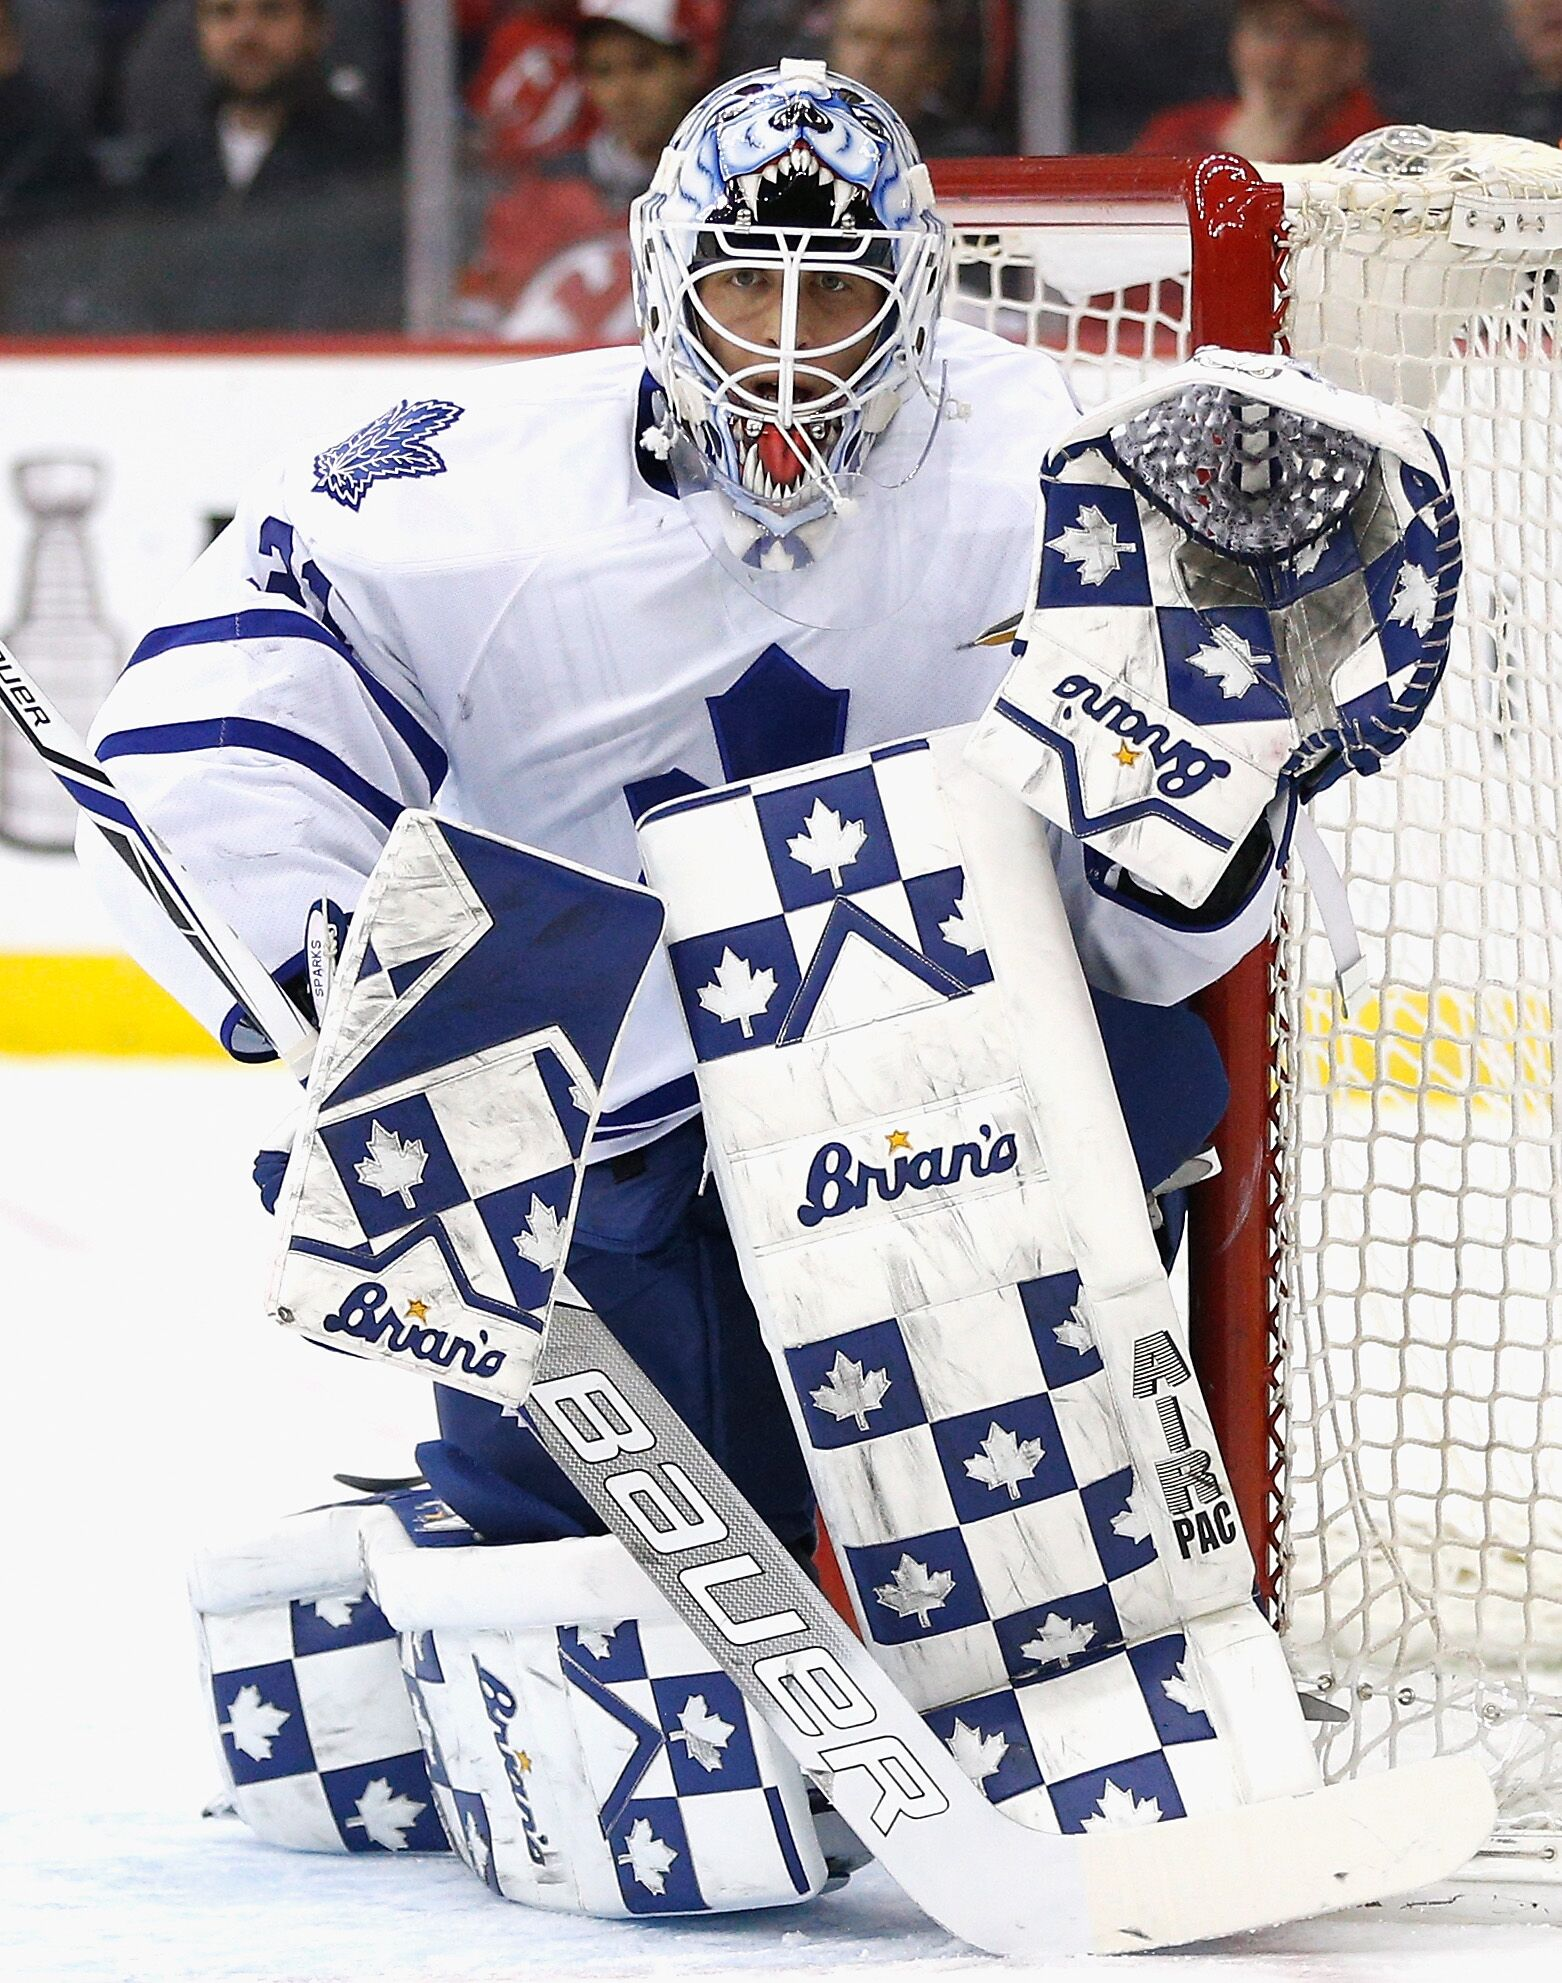 Top 5 Best Looking Toronto Maple Leafs Goalie Masks of All-Time